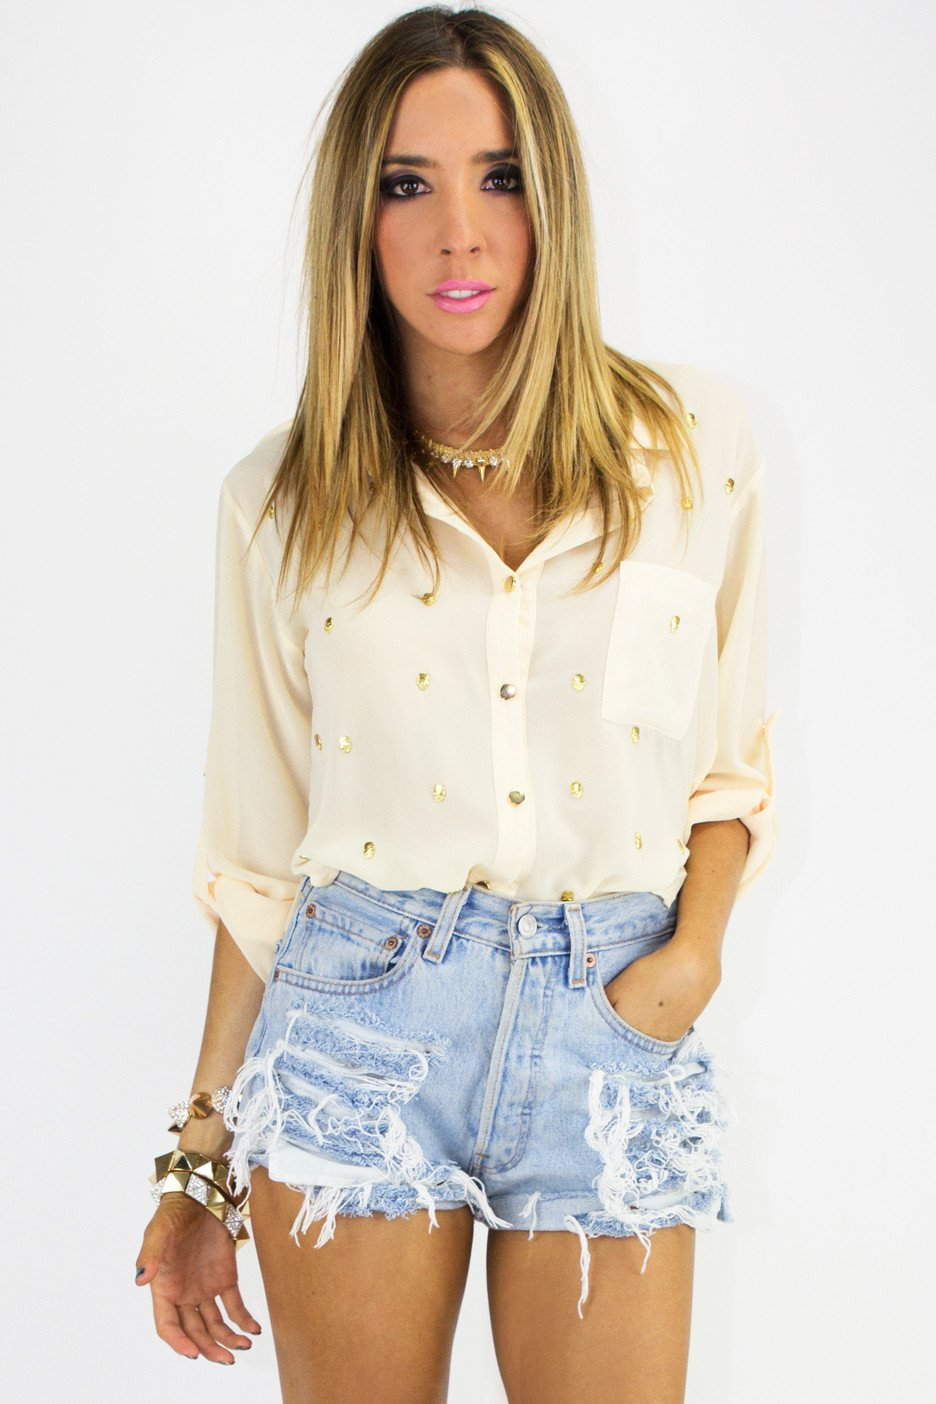 ALL OVER SKULL BLOUSE - Cream - Haute & Rebellious